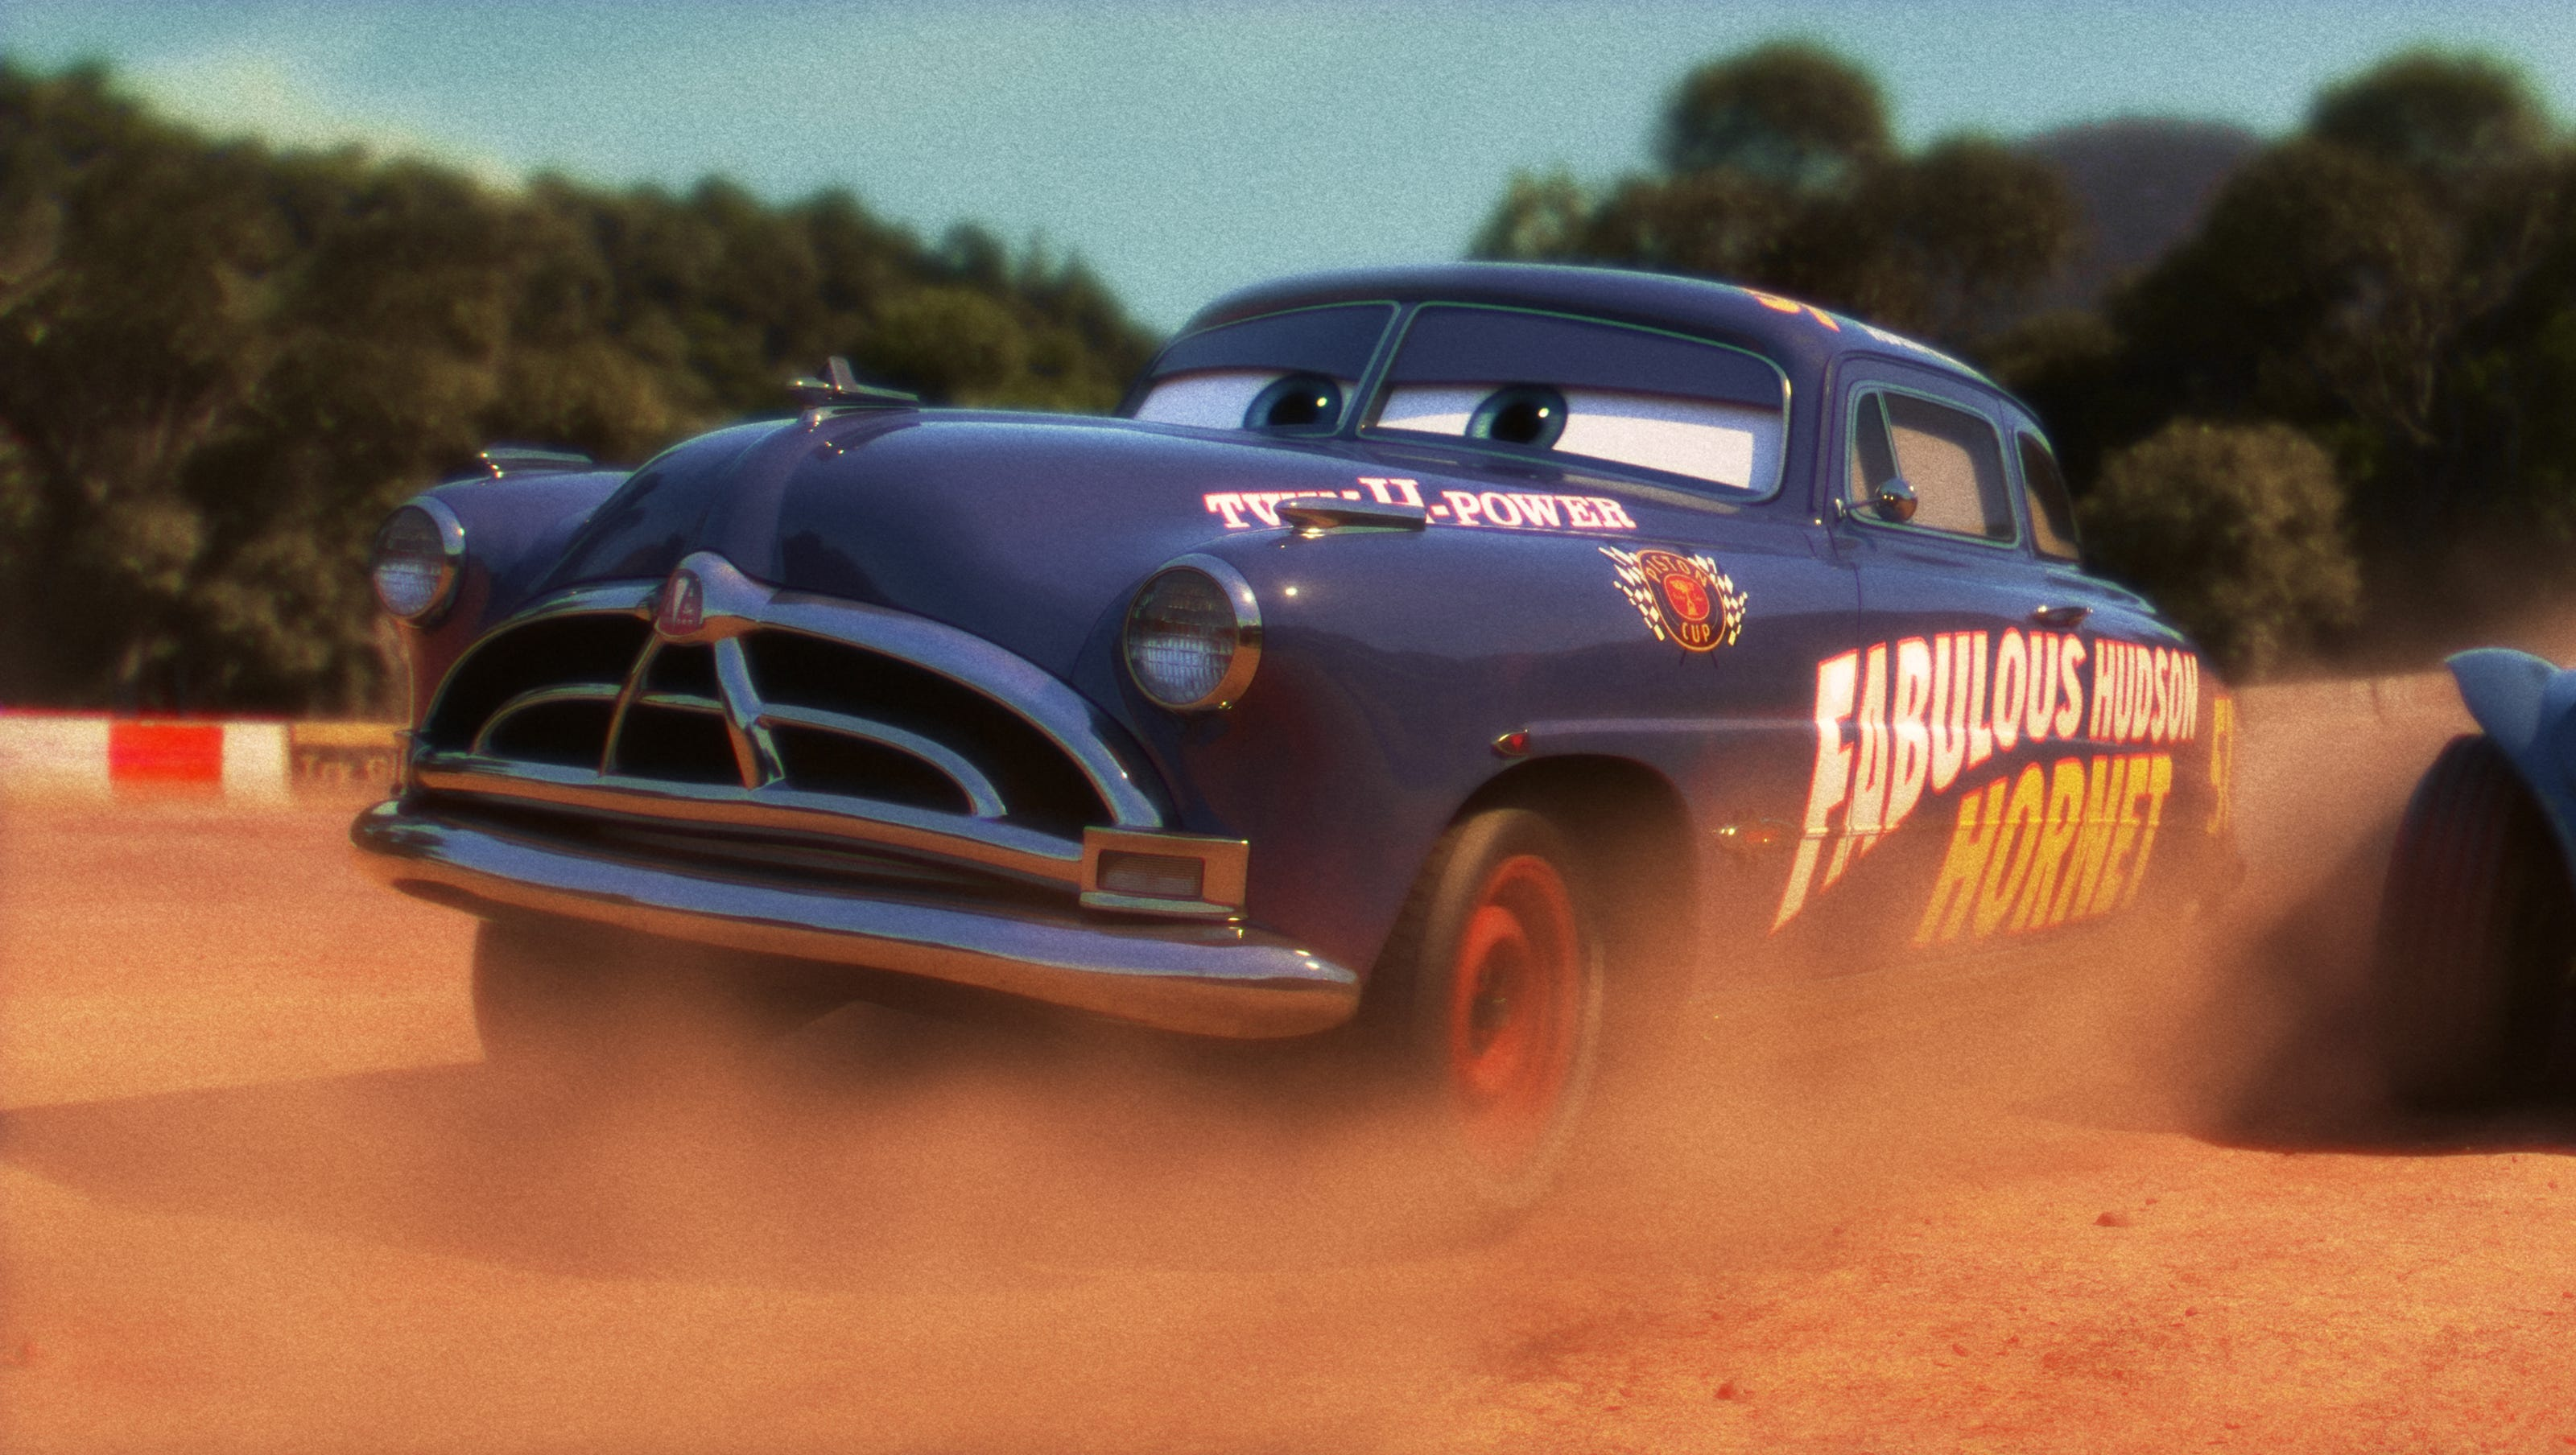 That really is Paul Newman riding again as Doc Hudson in 'Cars 3'